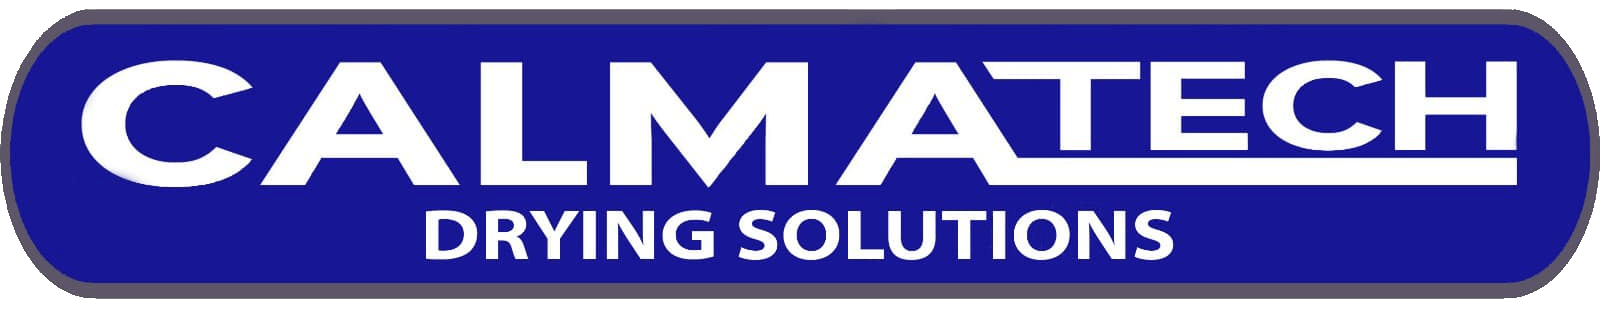 Calmatech Drying Solutions Logo